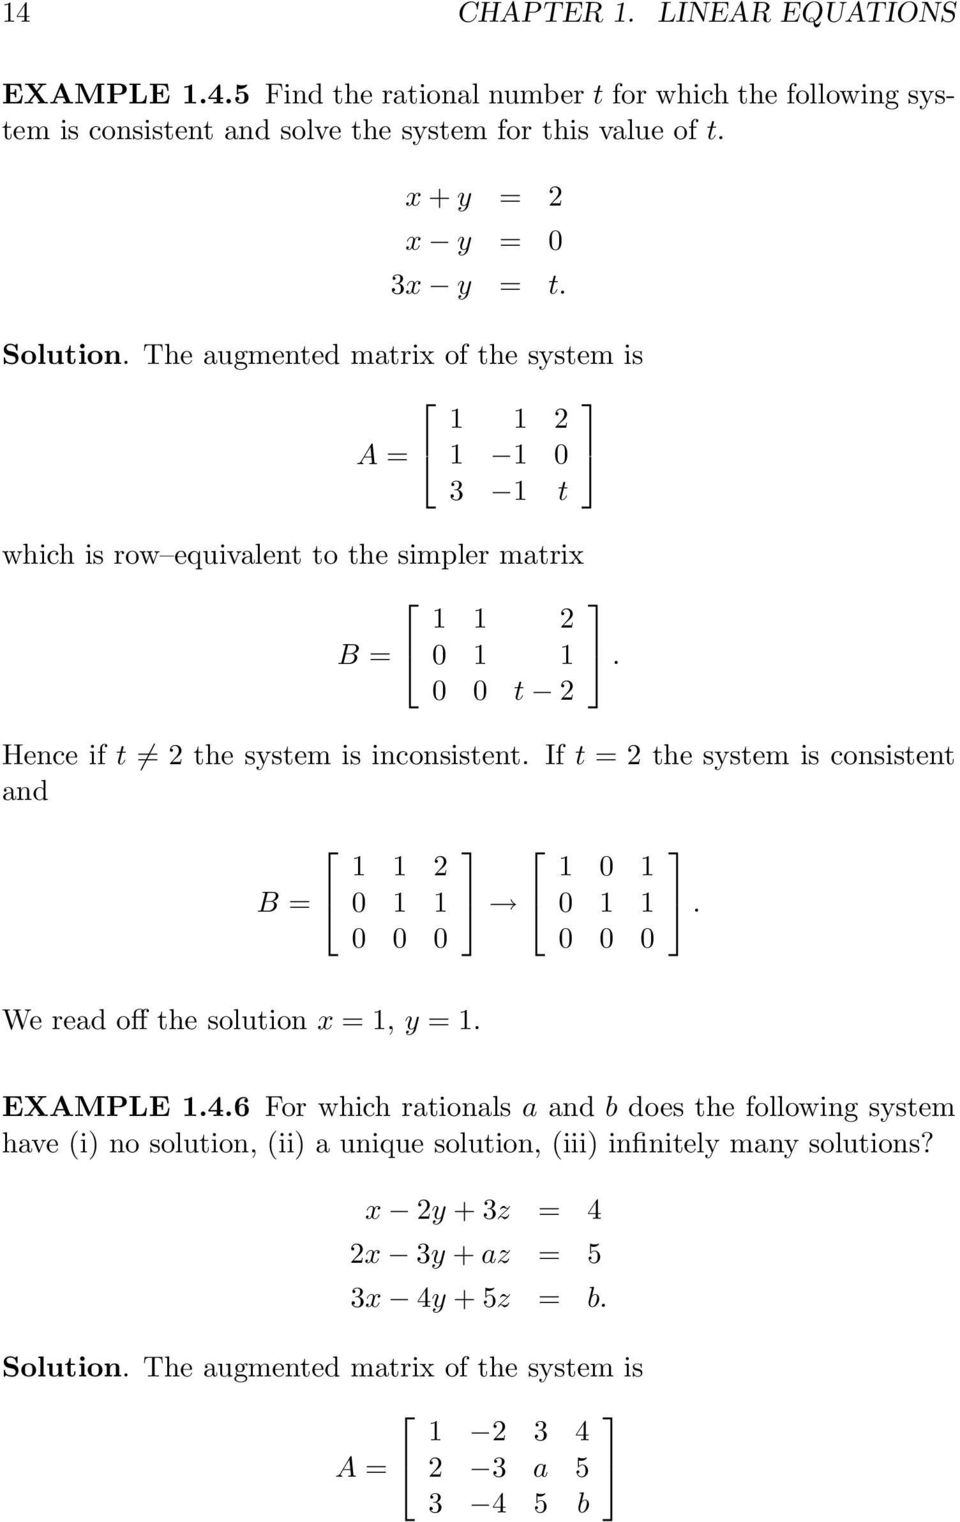 If t = the system is consistent and B = 1 1 0 1 1 0 0 0 1 0 1 0 1 1 0 0 0. We read off the solution x = 1, y = 1. EXAMPLE 1.4.